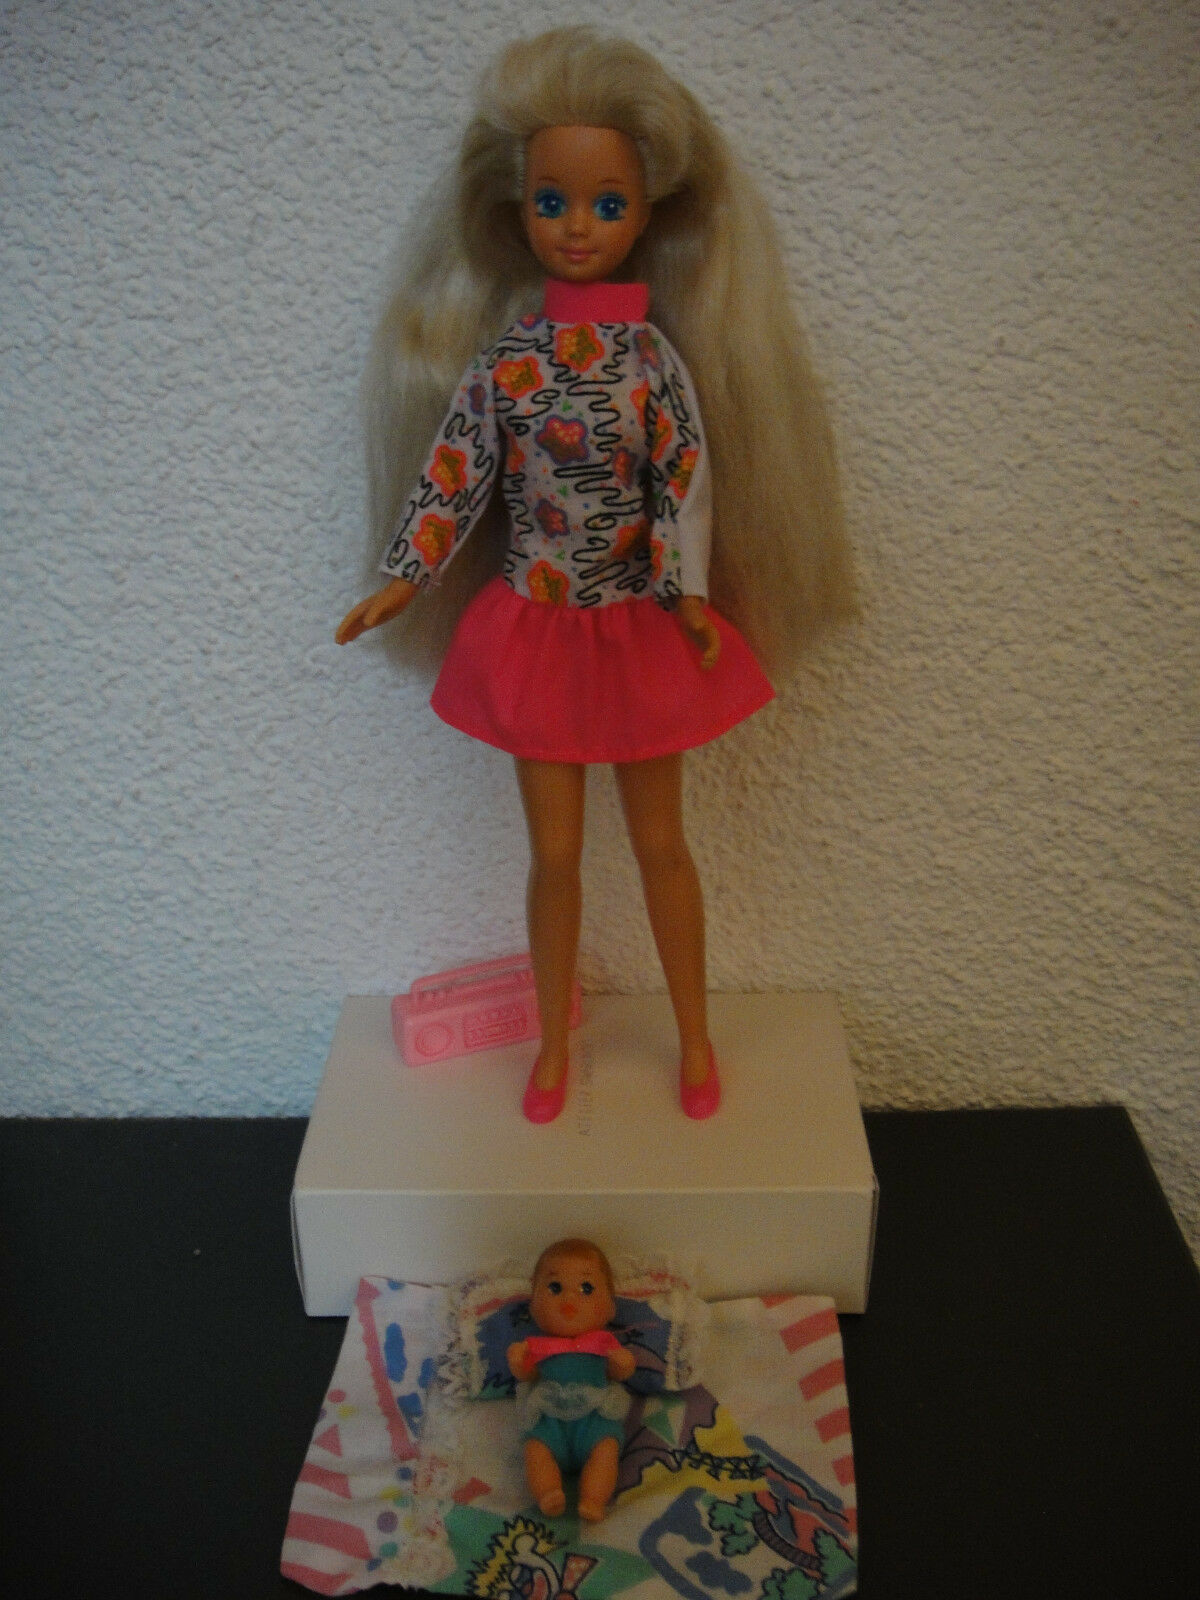 Mattel Barbie Babysitter SKIPPER Doll (1990) in Teen Time Fashion 1994 Outfit